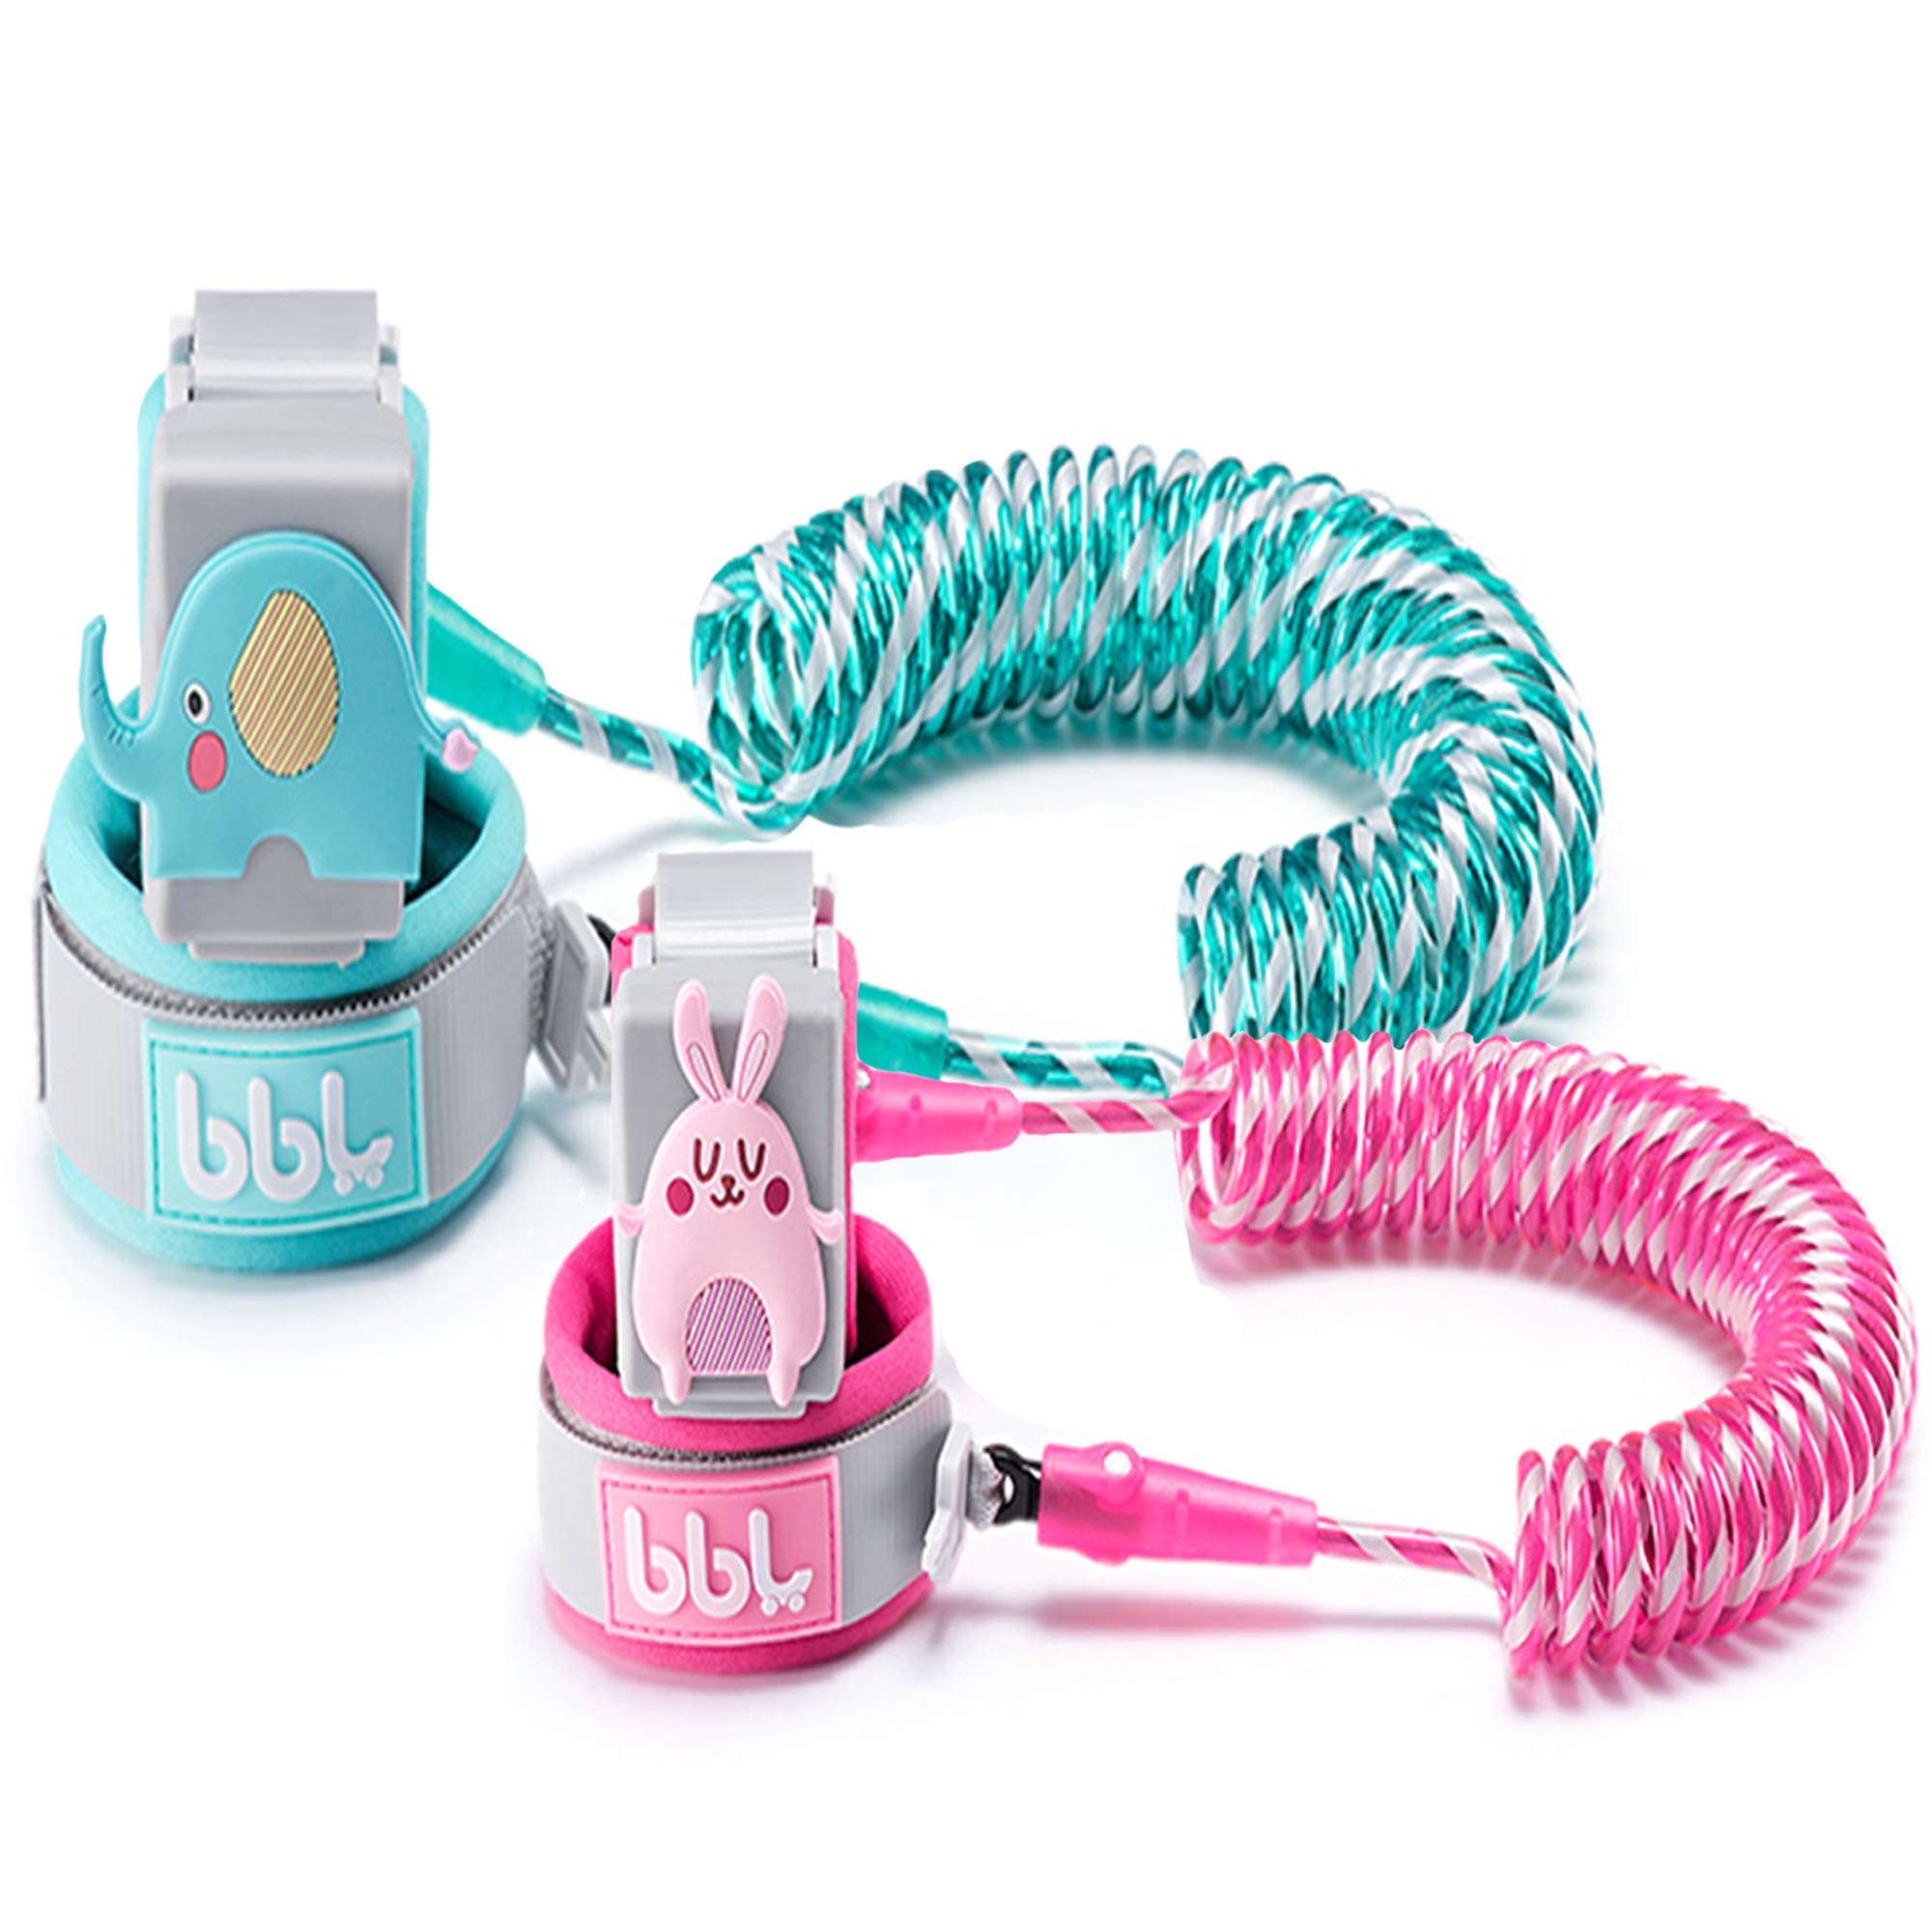 Anti Lost Wrist Link,Toddles Safety Wrist Leash,Anti Lost Rope Walking Harness with Key Lock,Parent-Child (Cyan/8.2 ft and Pink/4.9 ft) …